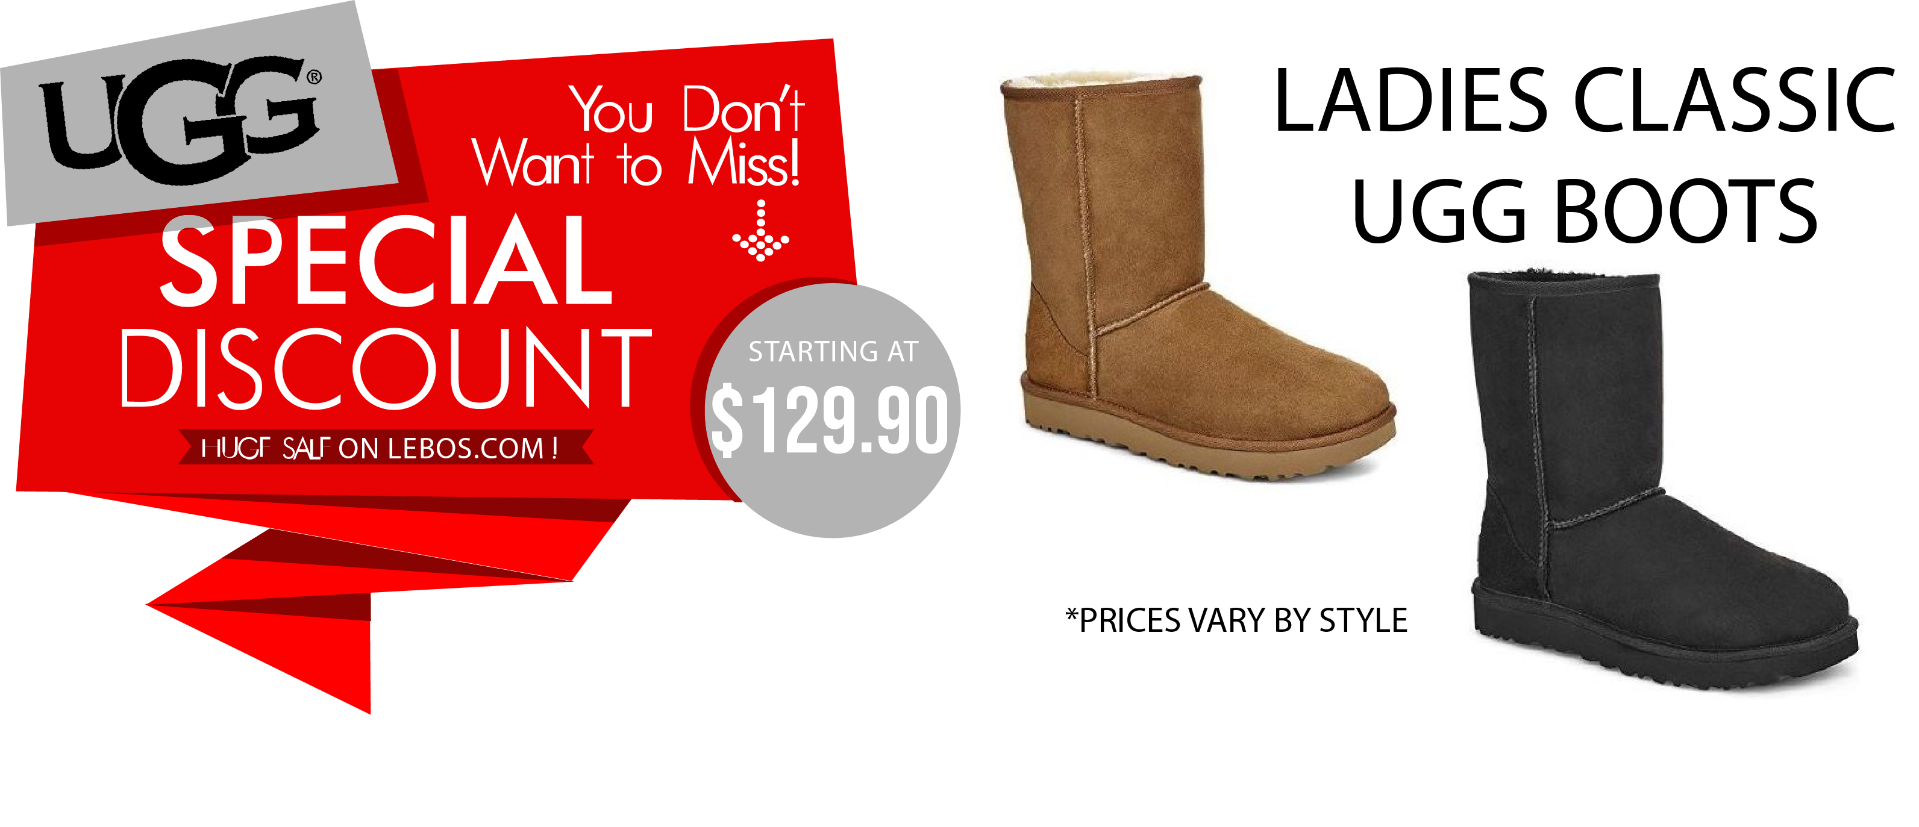 LEBOS CYBER MONDAY UGGS STARTING AT $129.90 ONE DAY ONLY SALE